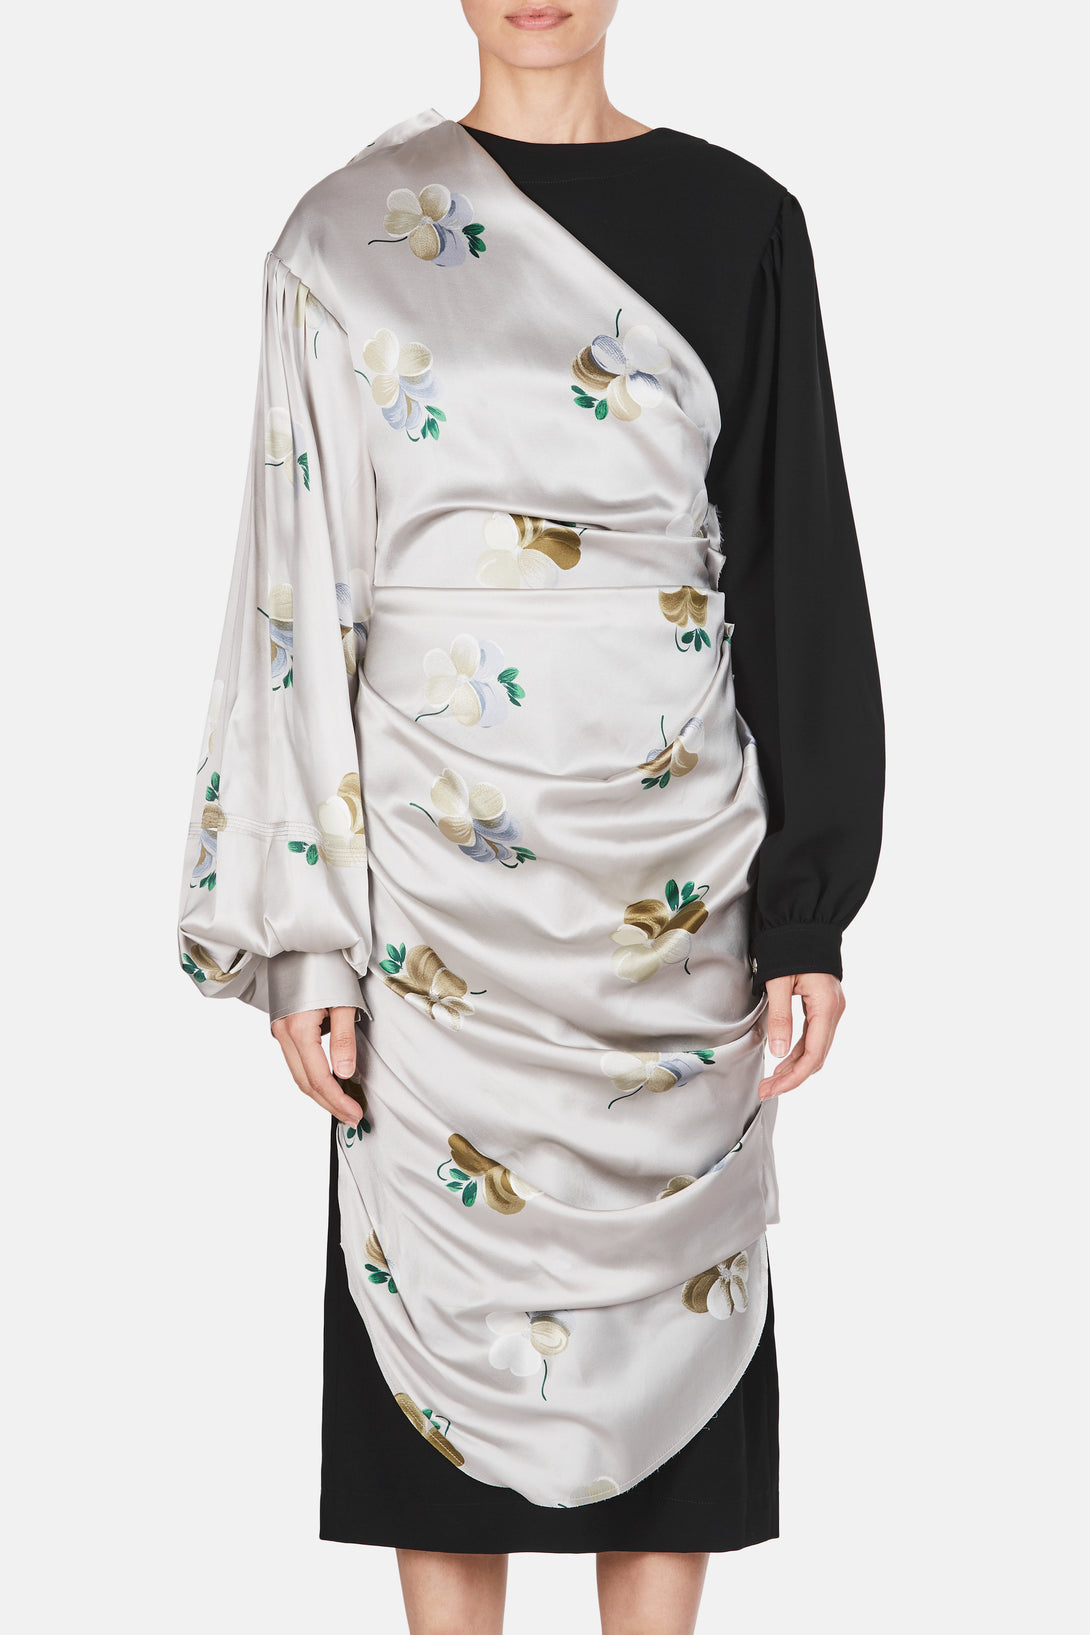 Draped Floral Satin Dress - Light Grey